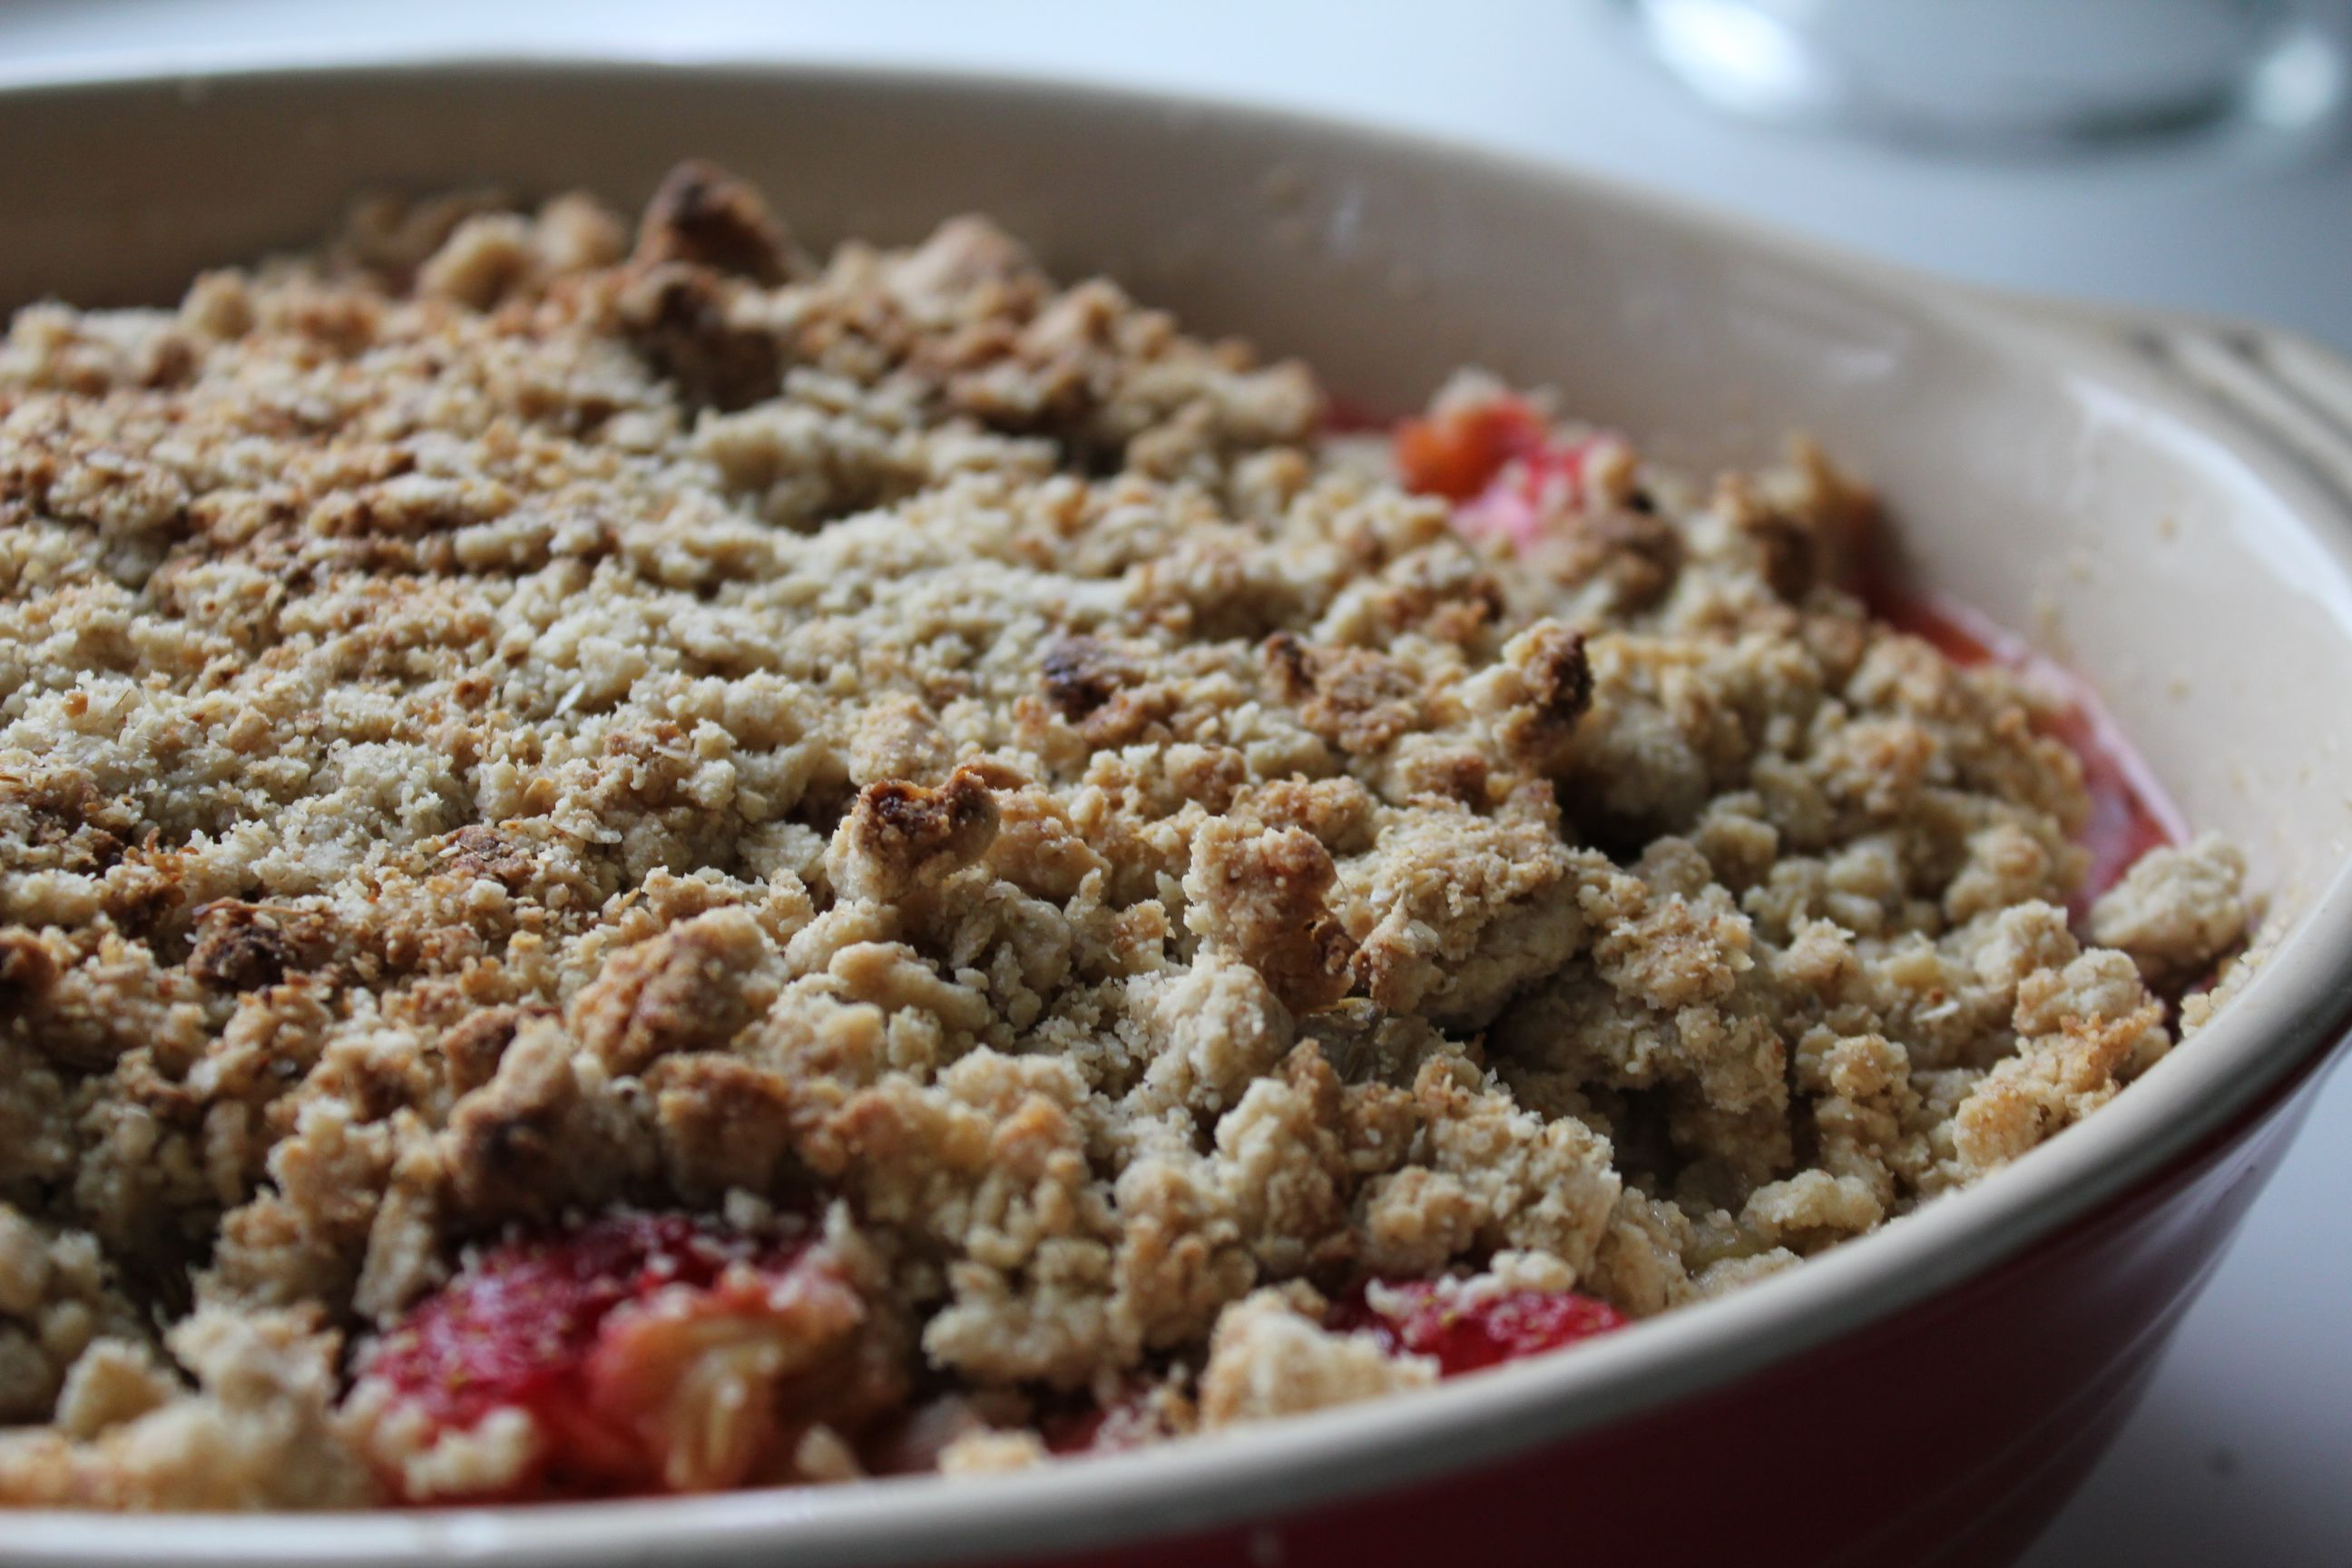 Blog Series: Norwegian Ingredient Spotlight: Gluten Free Strawberry and Rhubarb Crumble